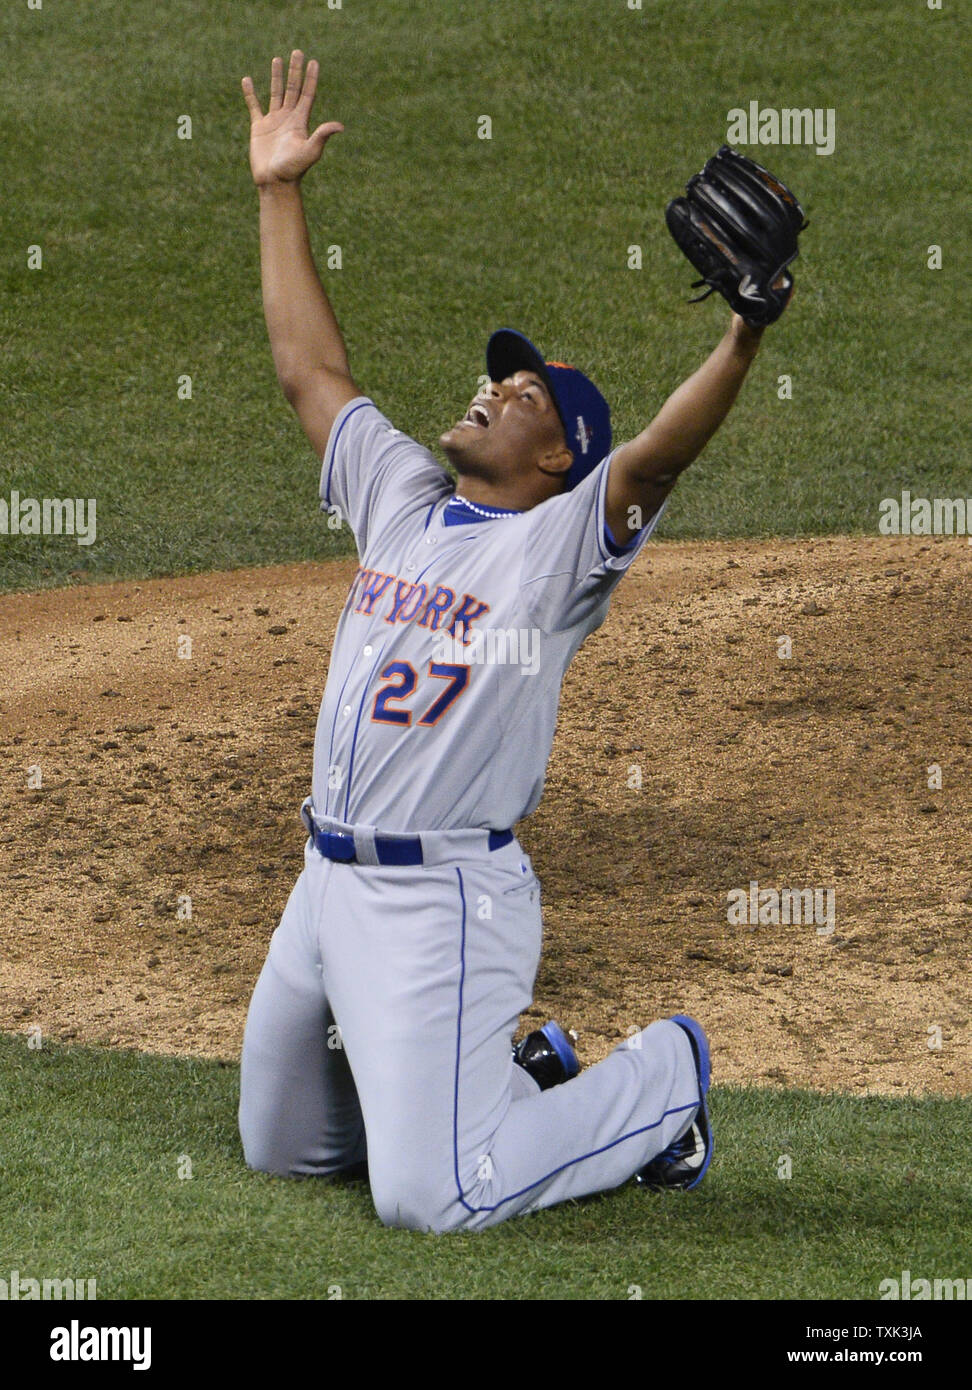 New York Mets closer Jeurys Familia celebrates after striking out the final Chicago Cubs batter and completing the series sweep in game 4 of the National League Championship Series at Wrigley Field in Chicago on October 21, 2015. The Mets defeated the Cubs 8-3.     Photo by Jim Frischling/UPI - Stock Image